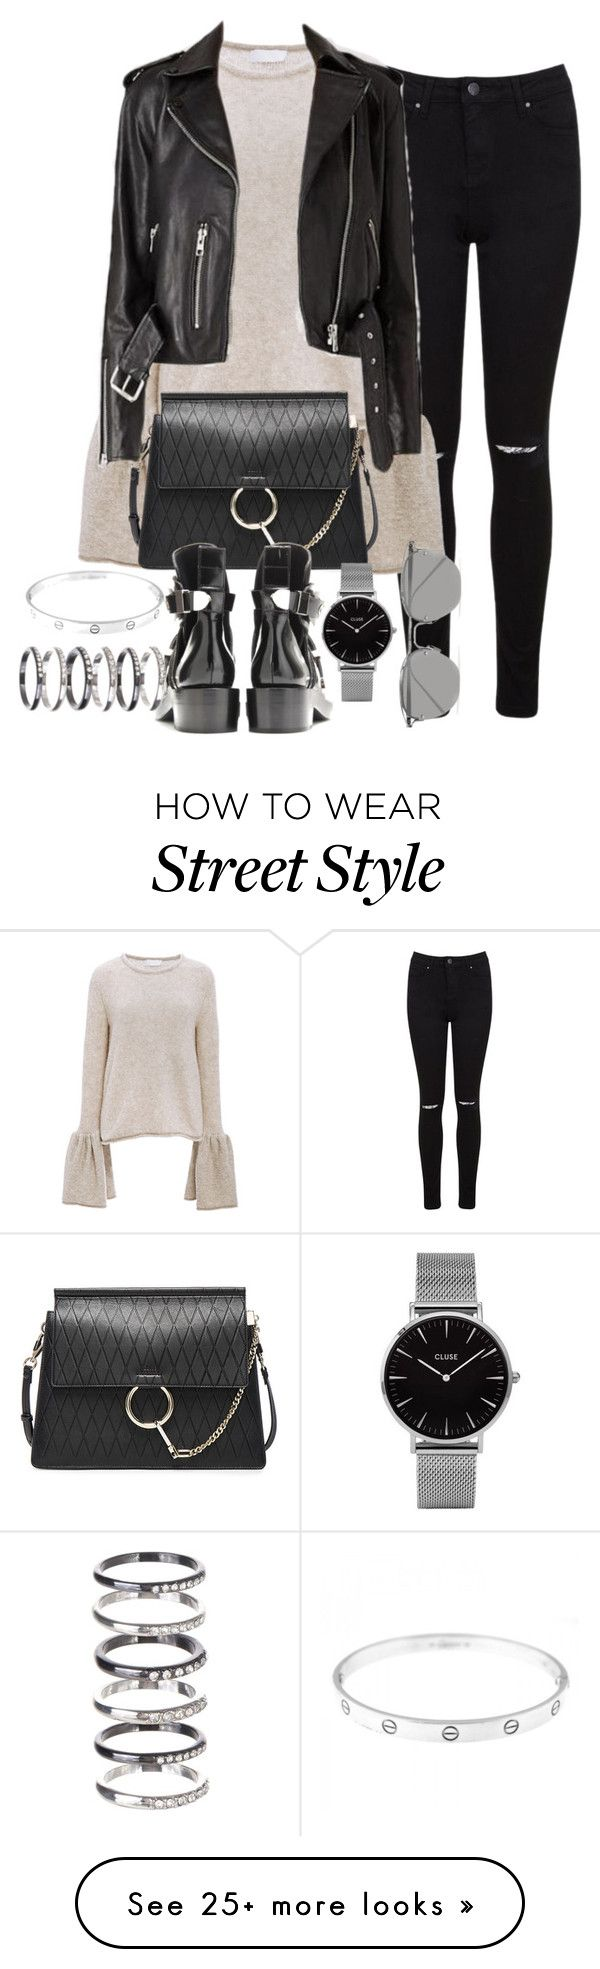 """""""Untitled #1361"""" by ruhika29 on Polyvore featuring Miss Selfridge, CO, Chloé, Topshop, Linda Farrow, Cartier and M.N.G"""